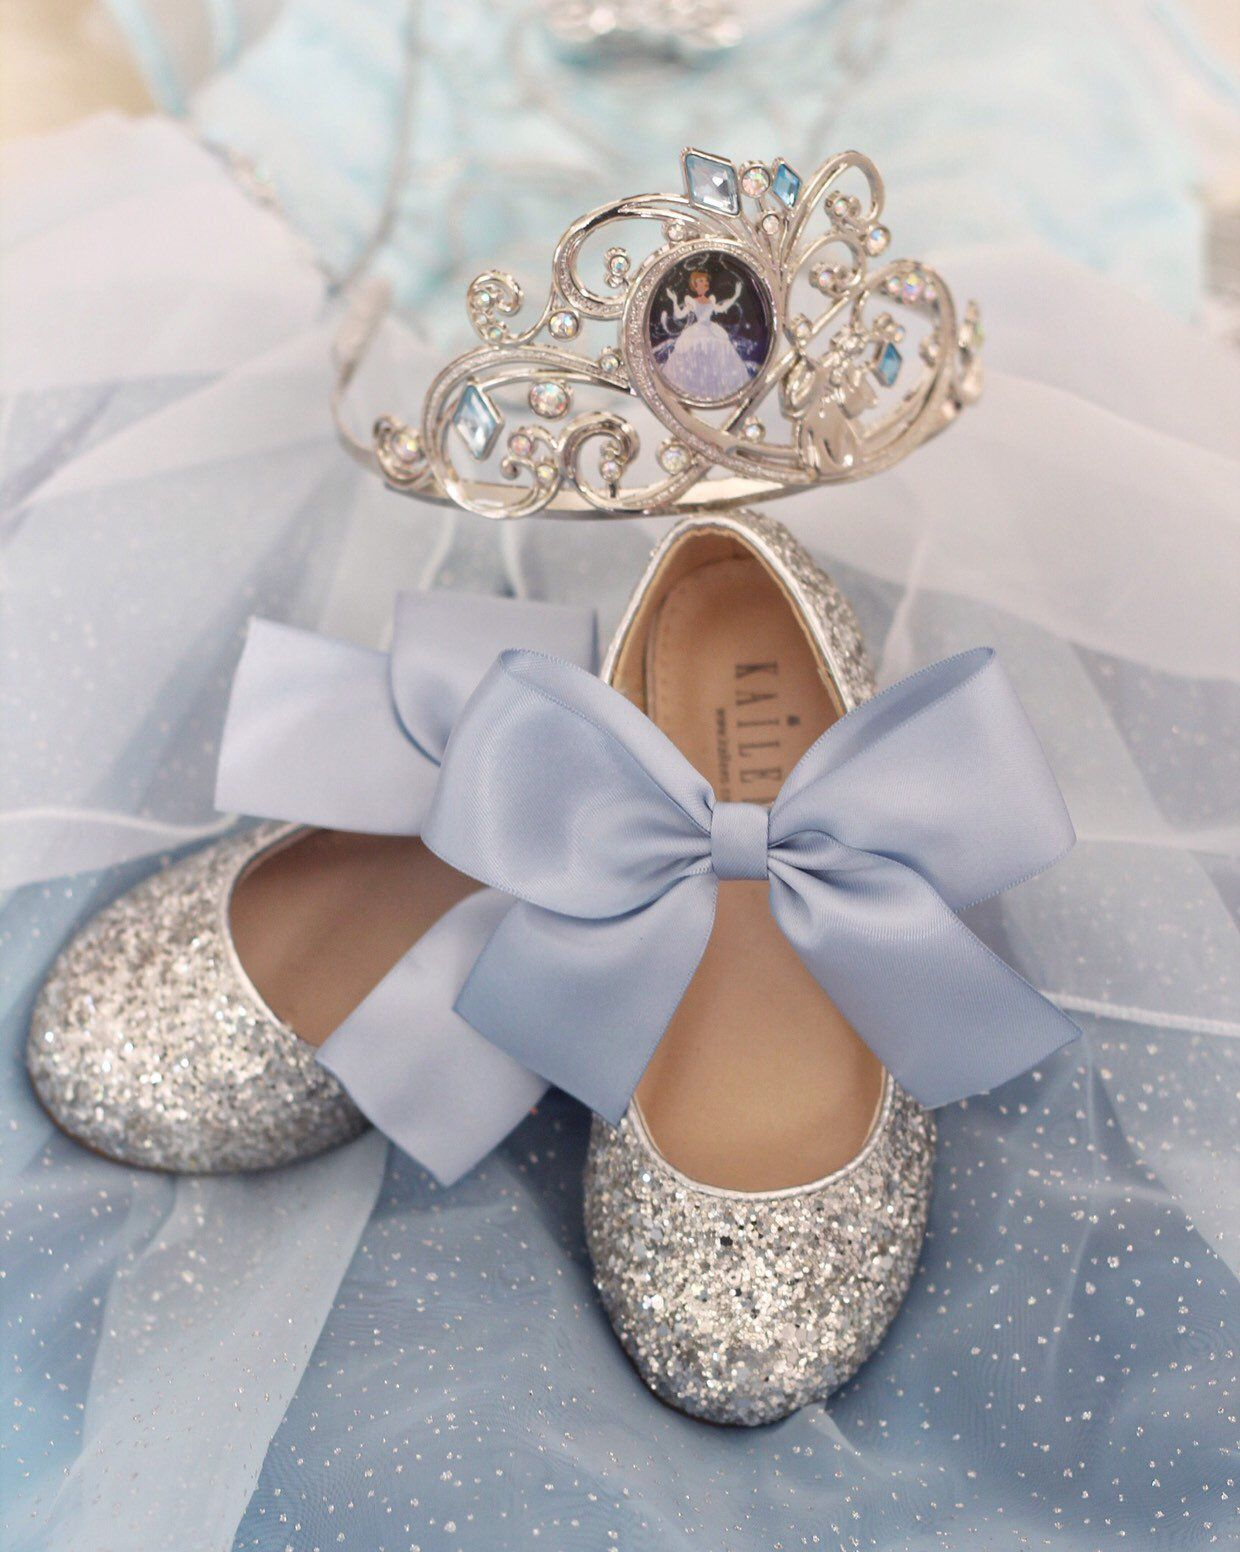 e045c9b03483 CINDERELLA Shoes - SILVER Rock Glitter mary-jane with Dusty Blue Satin  ribbon bow - Flower Girl Shoes